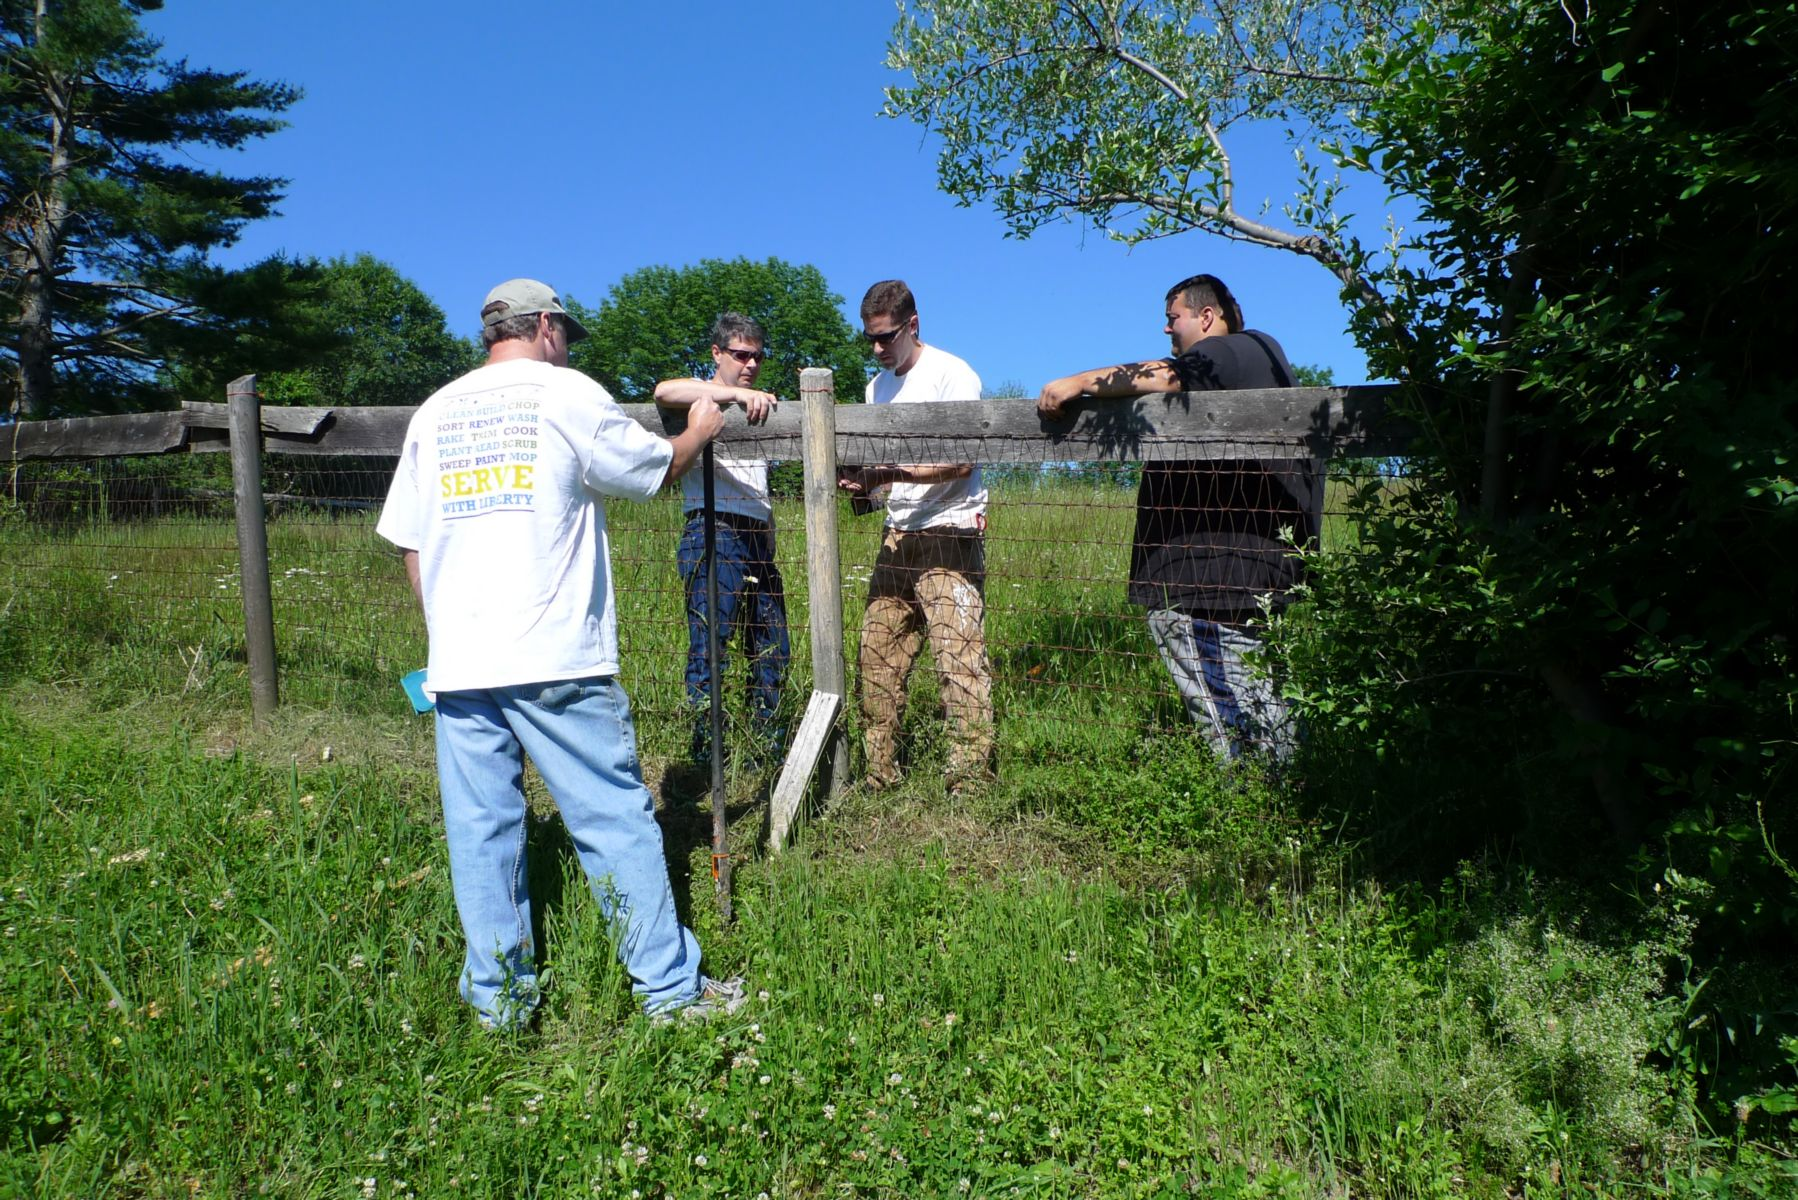 Corporate, youth, and community services organizations helping withfence repairs.